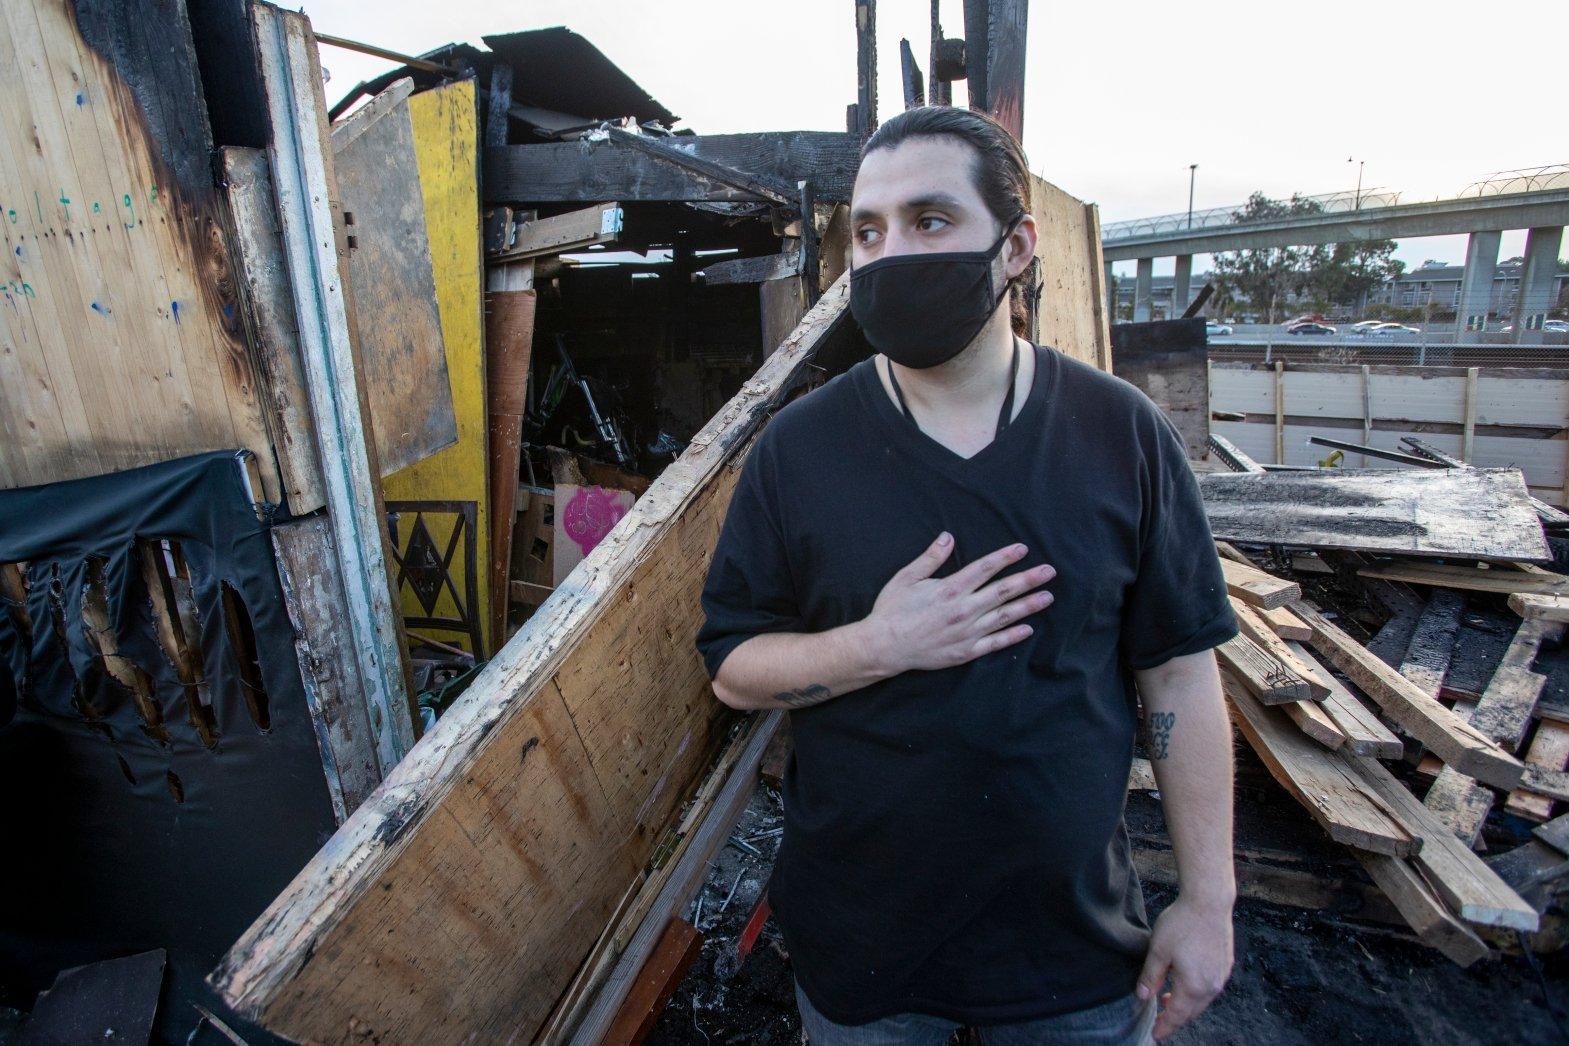 As Bay Area homeless camps grow, so does fire danger